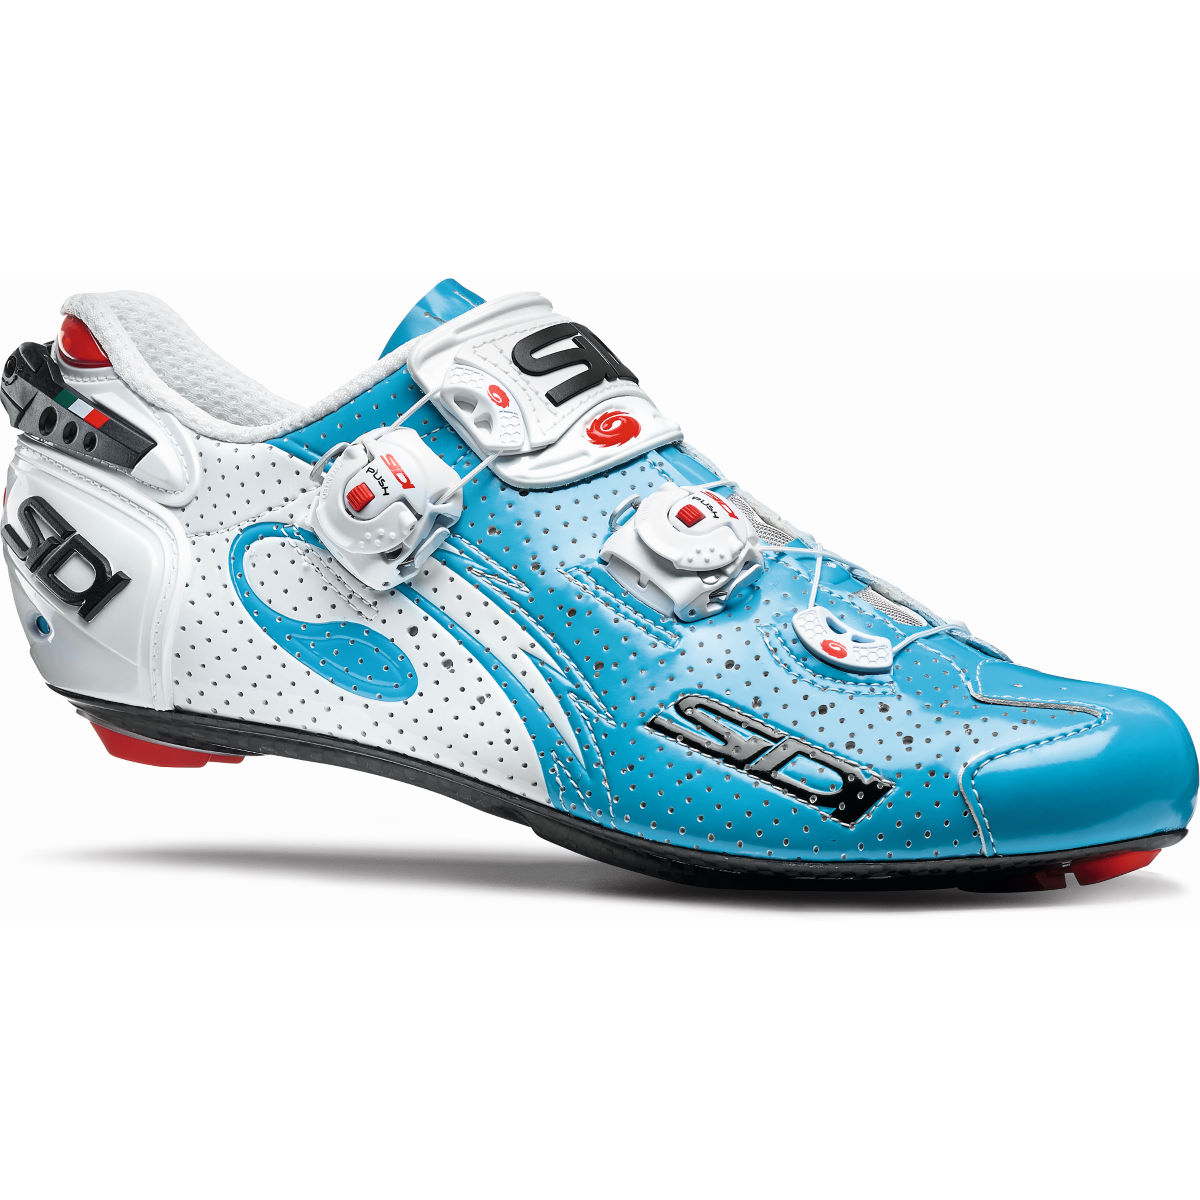 Chaussures Sidi Wire Carbon Air Vernice - 45,5 Bleu/Blanc